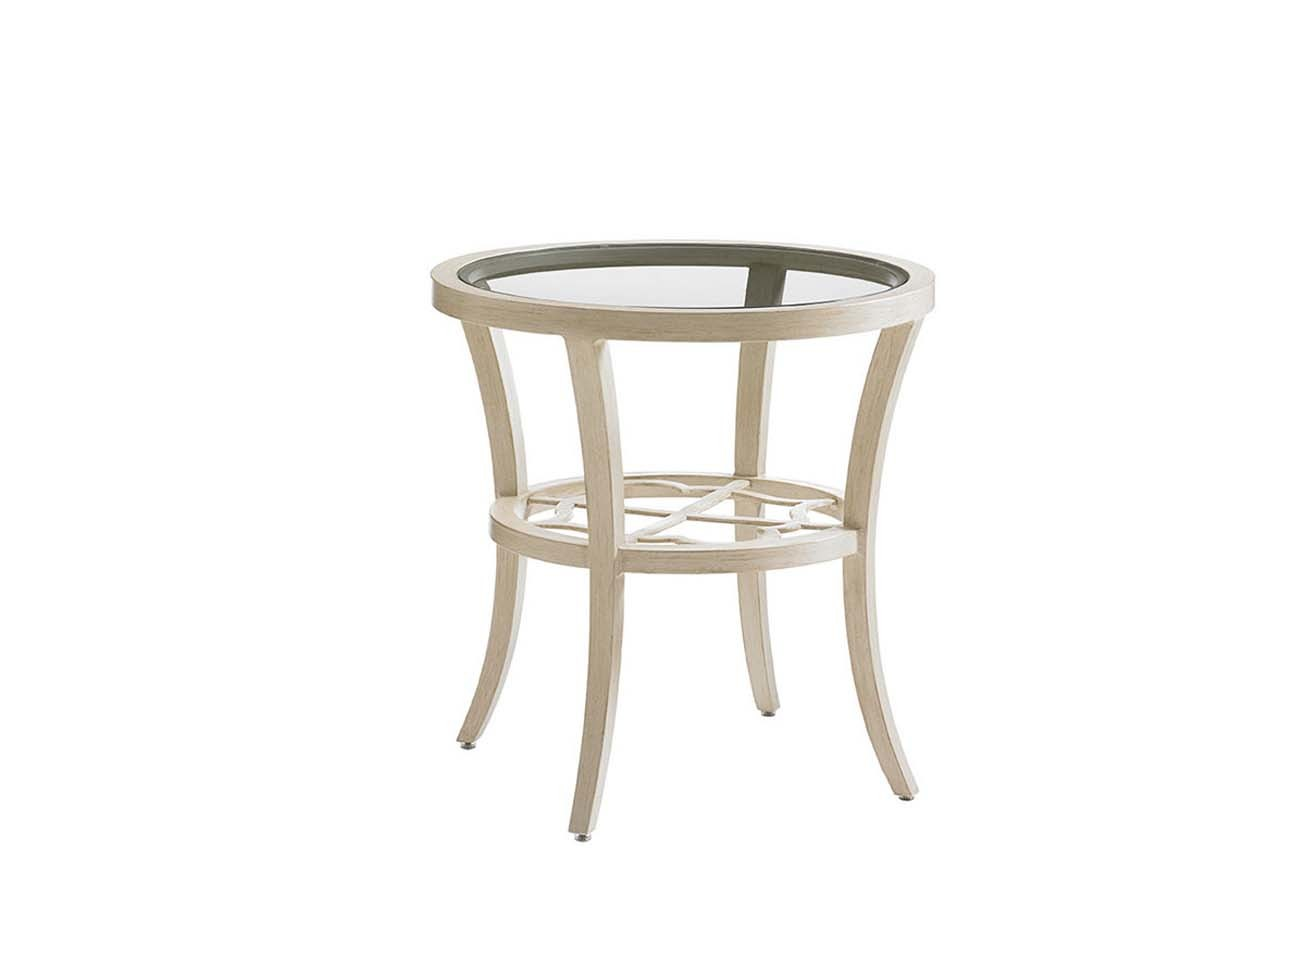 Misty Garden Round End Table With Inset Glass Top Hauser